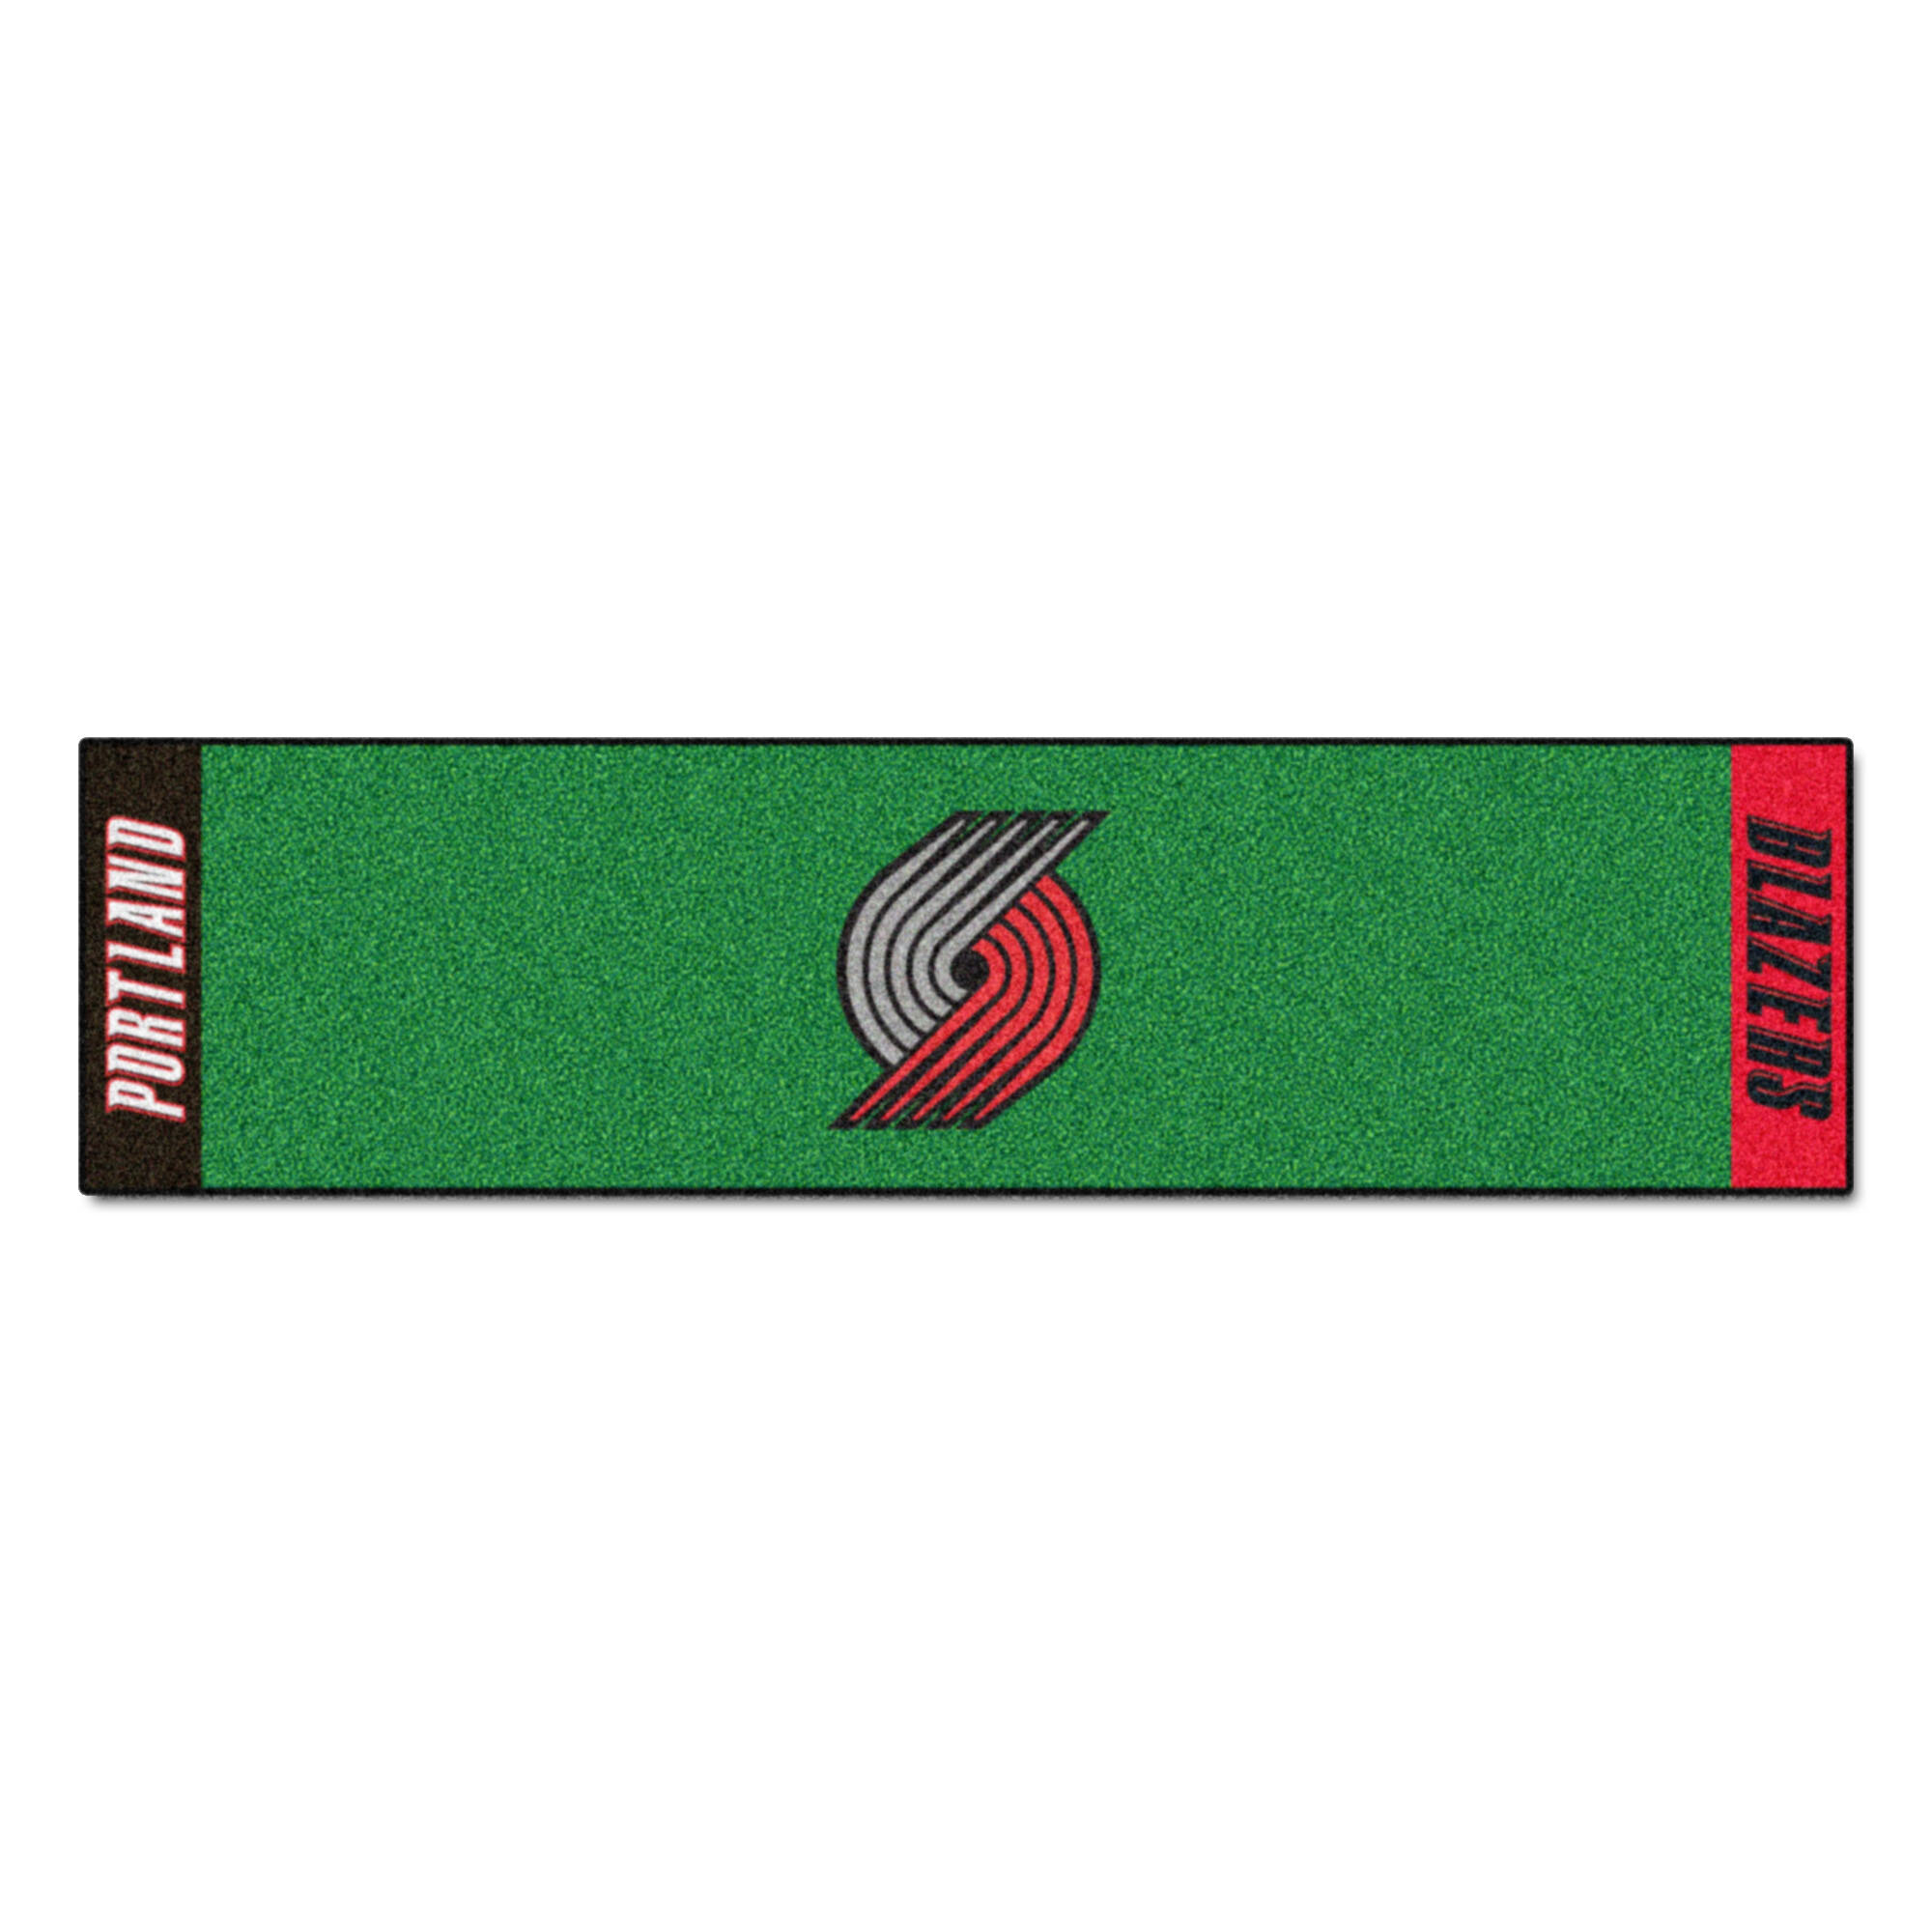 Fanmats Nba Portland Trail Blazers Putting Green 72 In X 18 In Non Slip Indoor Only Door Mat Wayfair